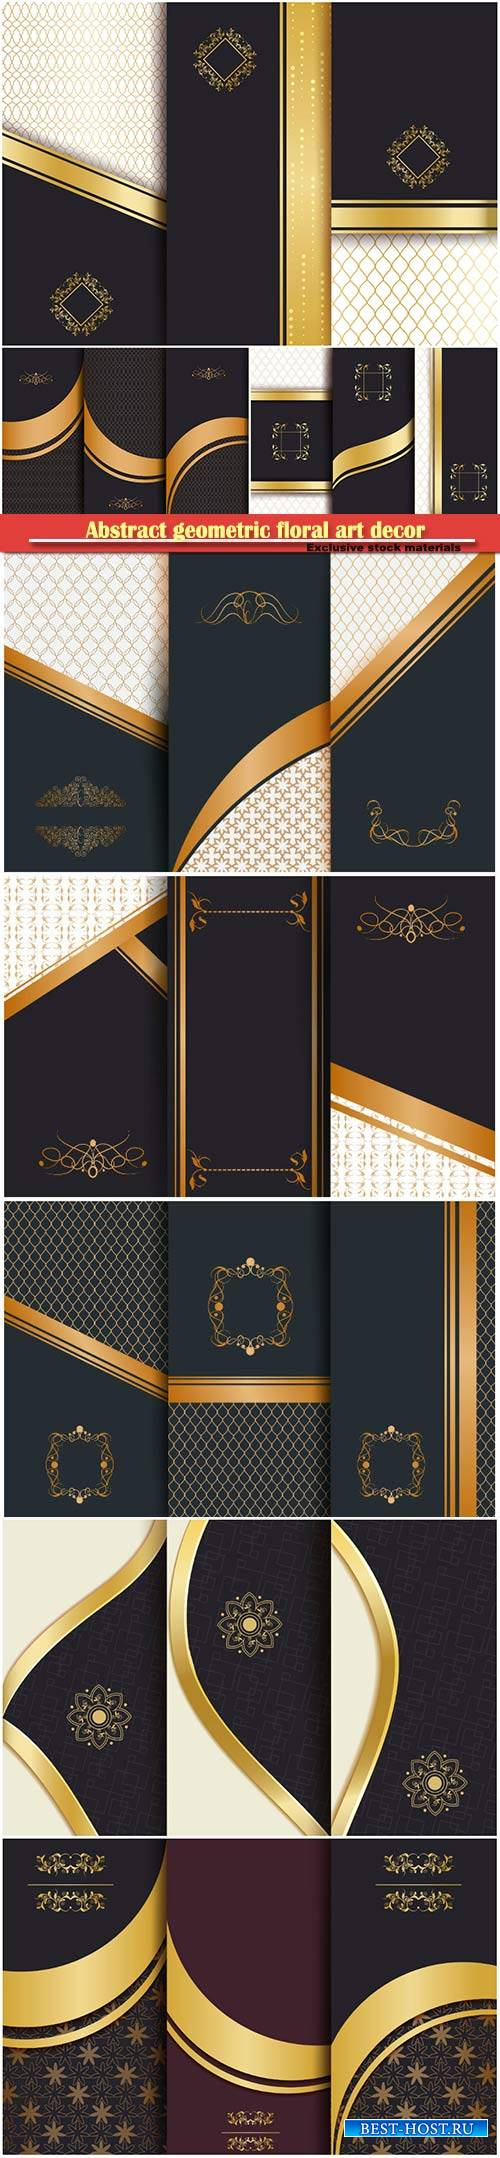 Abstract geometric floral art decor golden background template for menu car ...